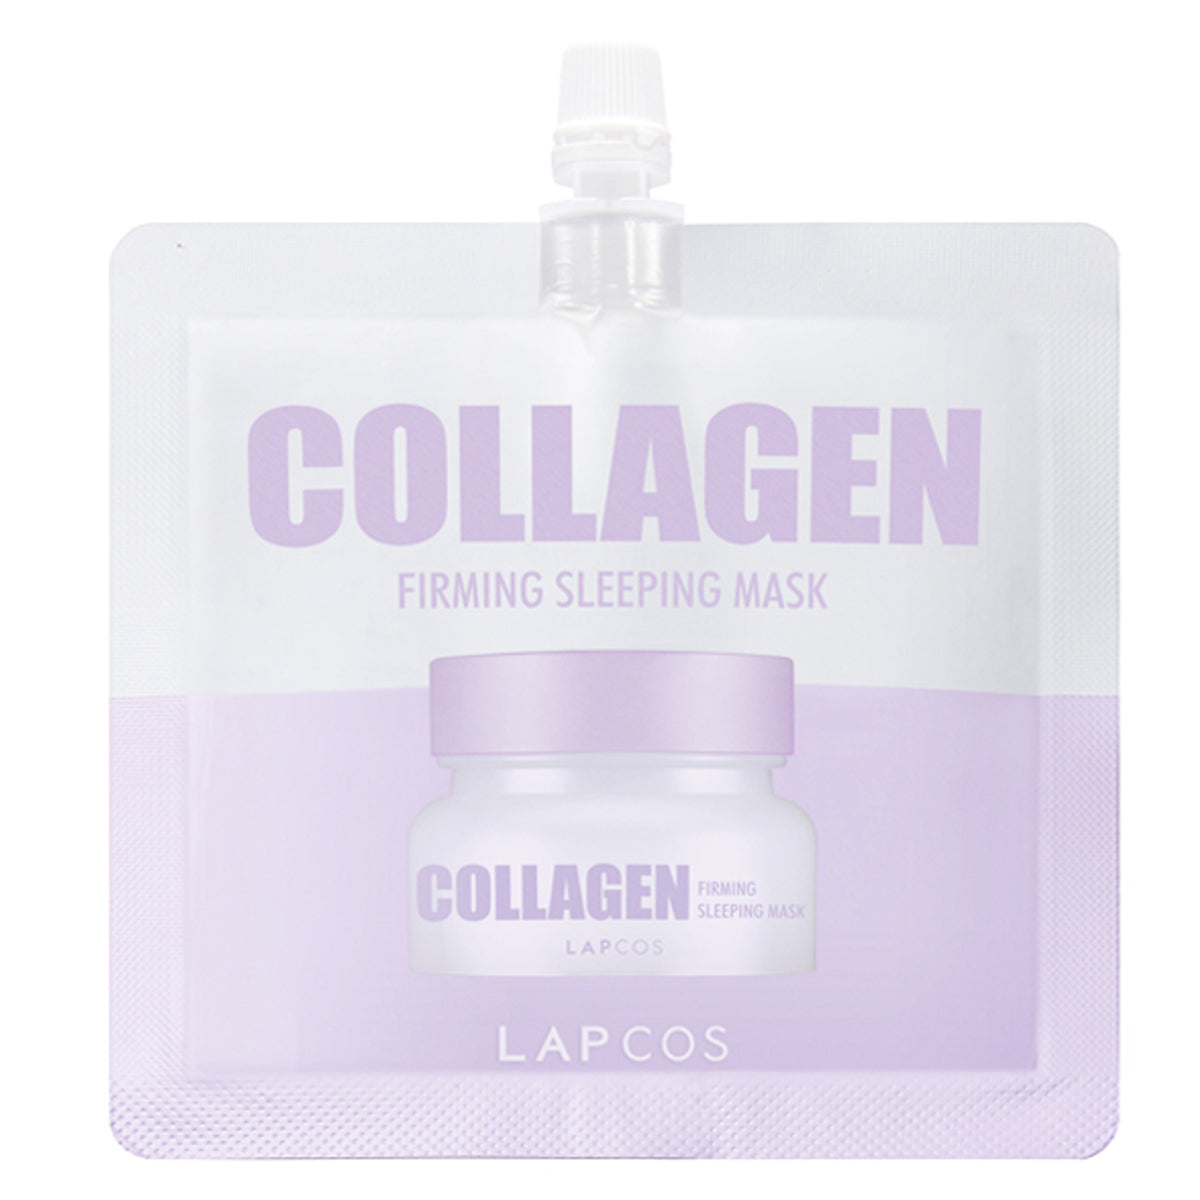 LAPCOS Collagen Sleep Mask - Travel PAKT